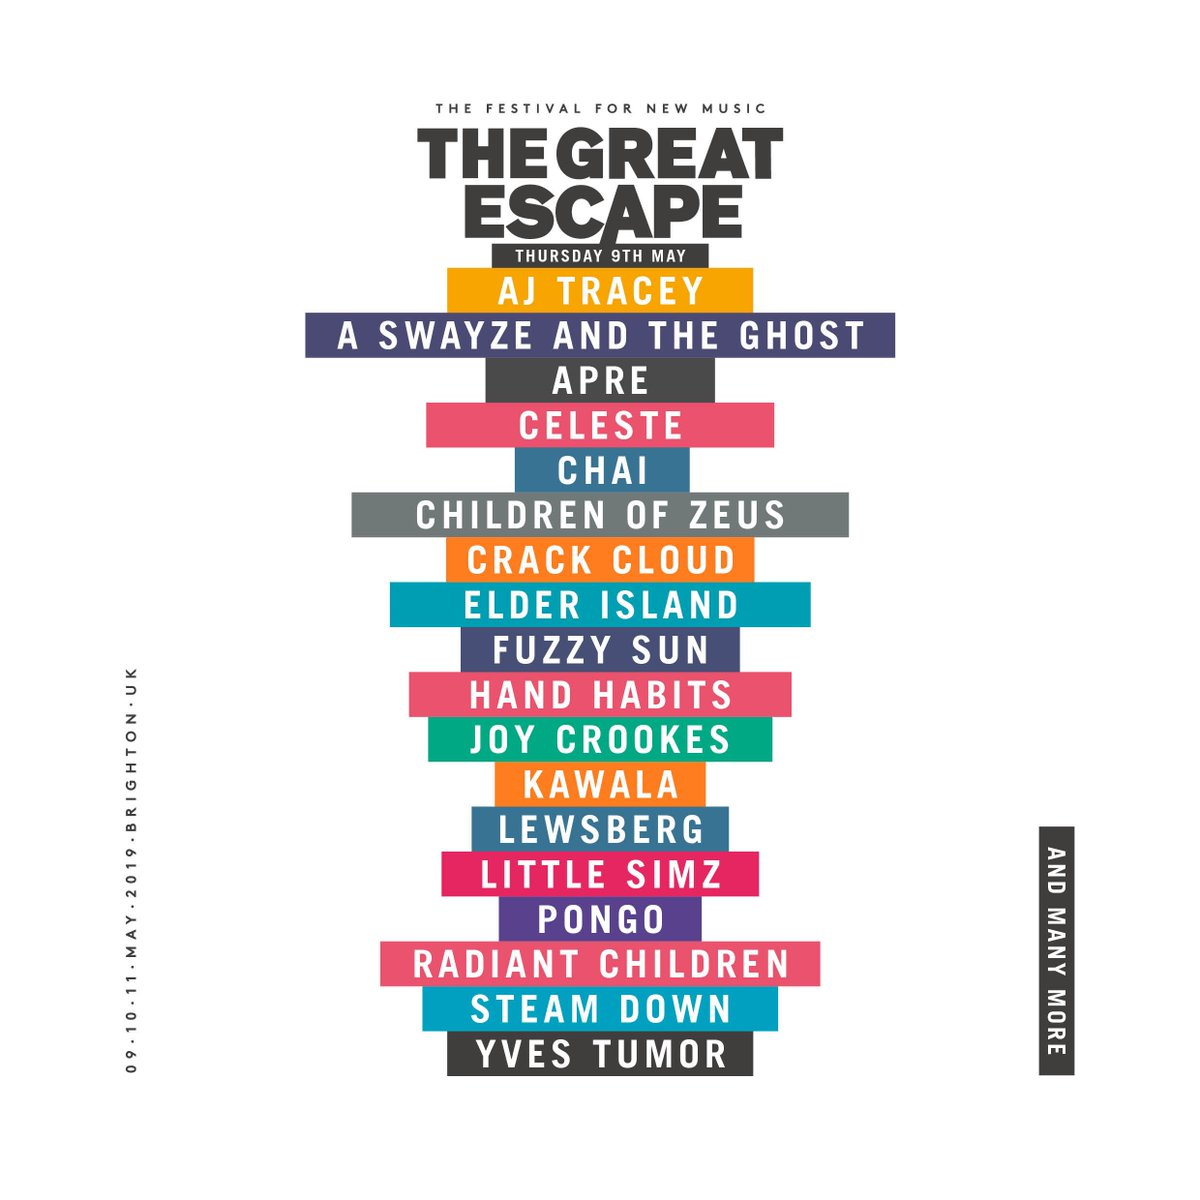 ICYMI here are some day by day highlights of the #TGE19 lineup so far... Who's top of your must see list? ⚡